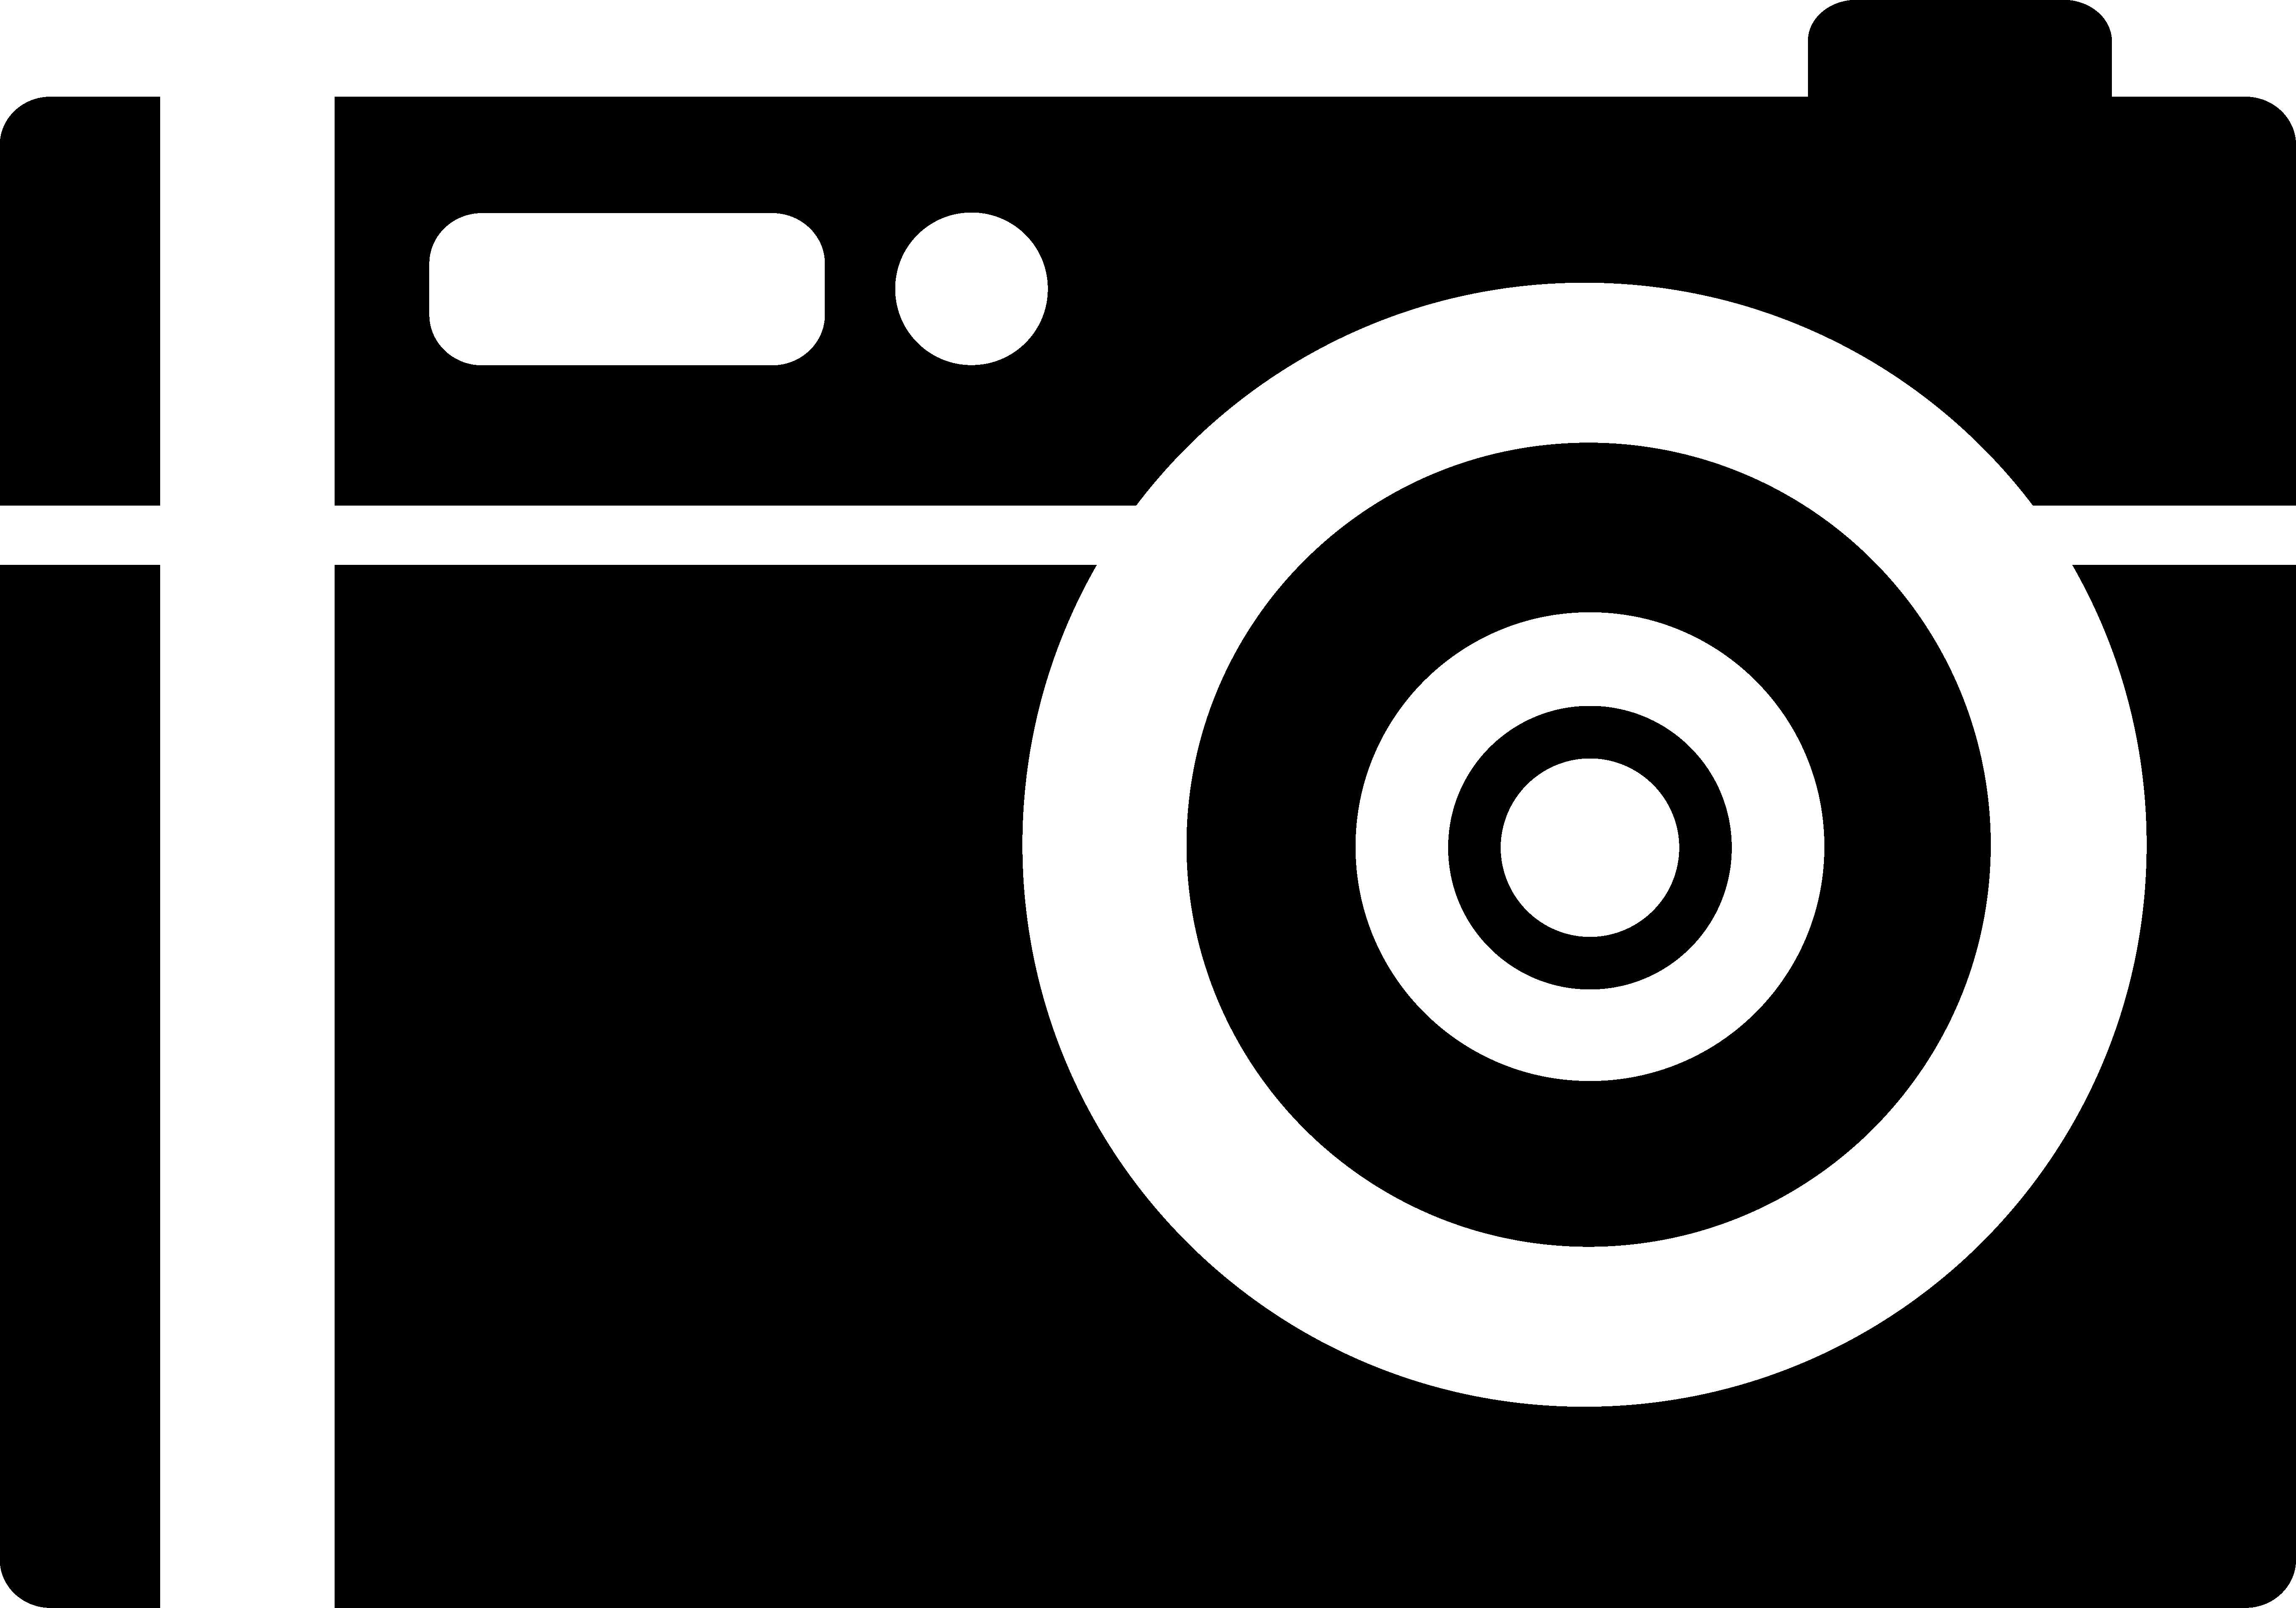 Camera vector clipart free banner freeuse Free Camera Vector Cliparts, Download Free Clip Art, Free Clip Art ... banner freeuse